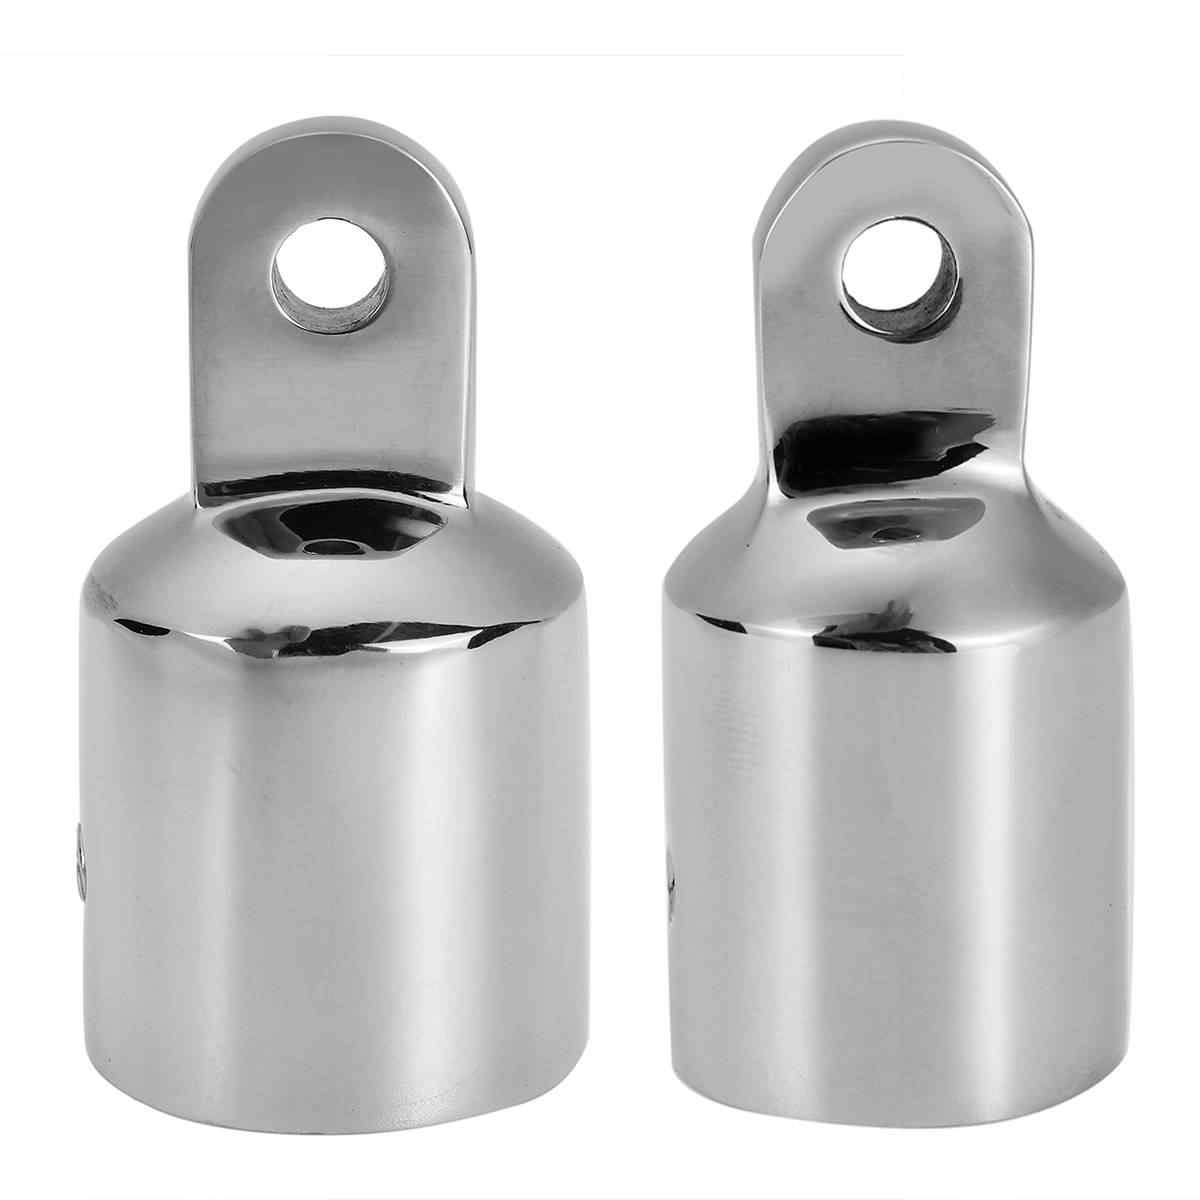 22mm Stainless Steel Hinged Connector Boat Rail Hood Fitting Hardware  .☆a